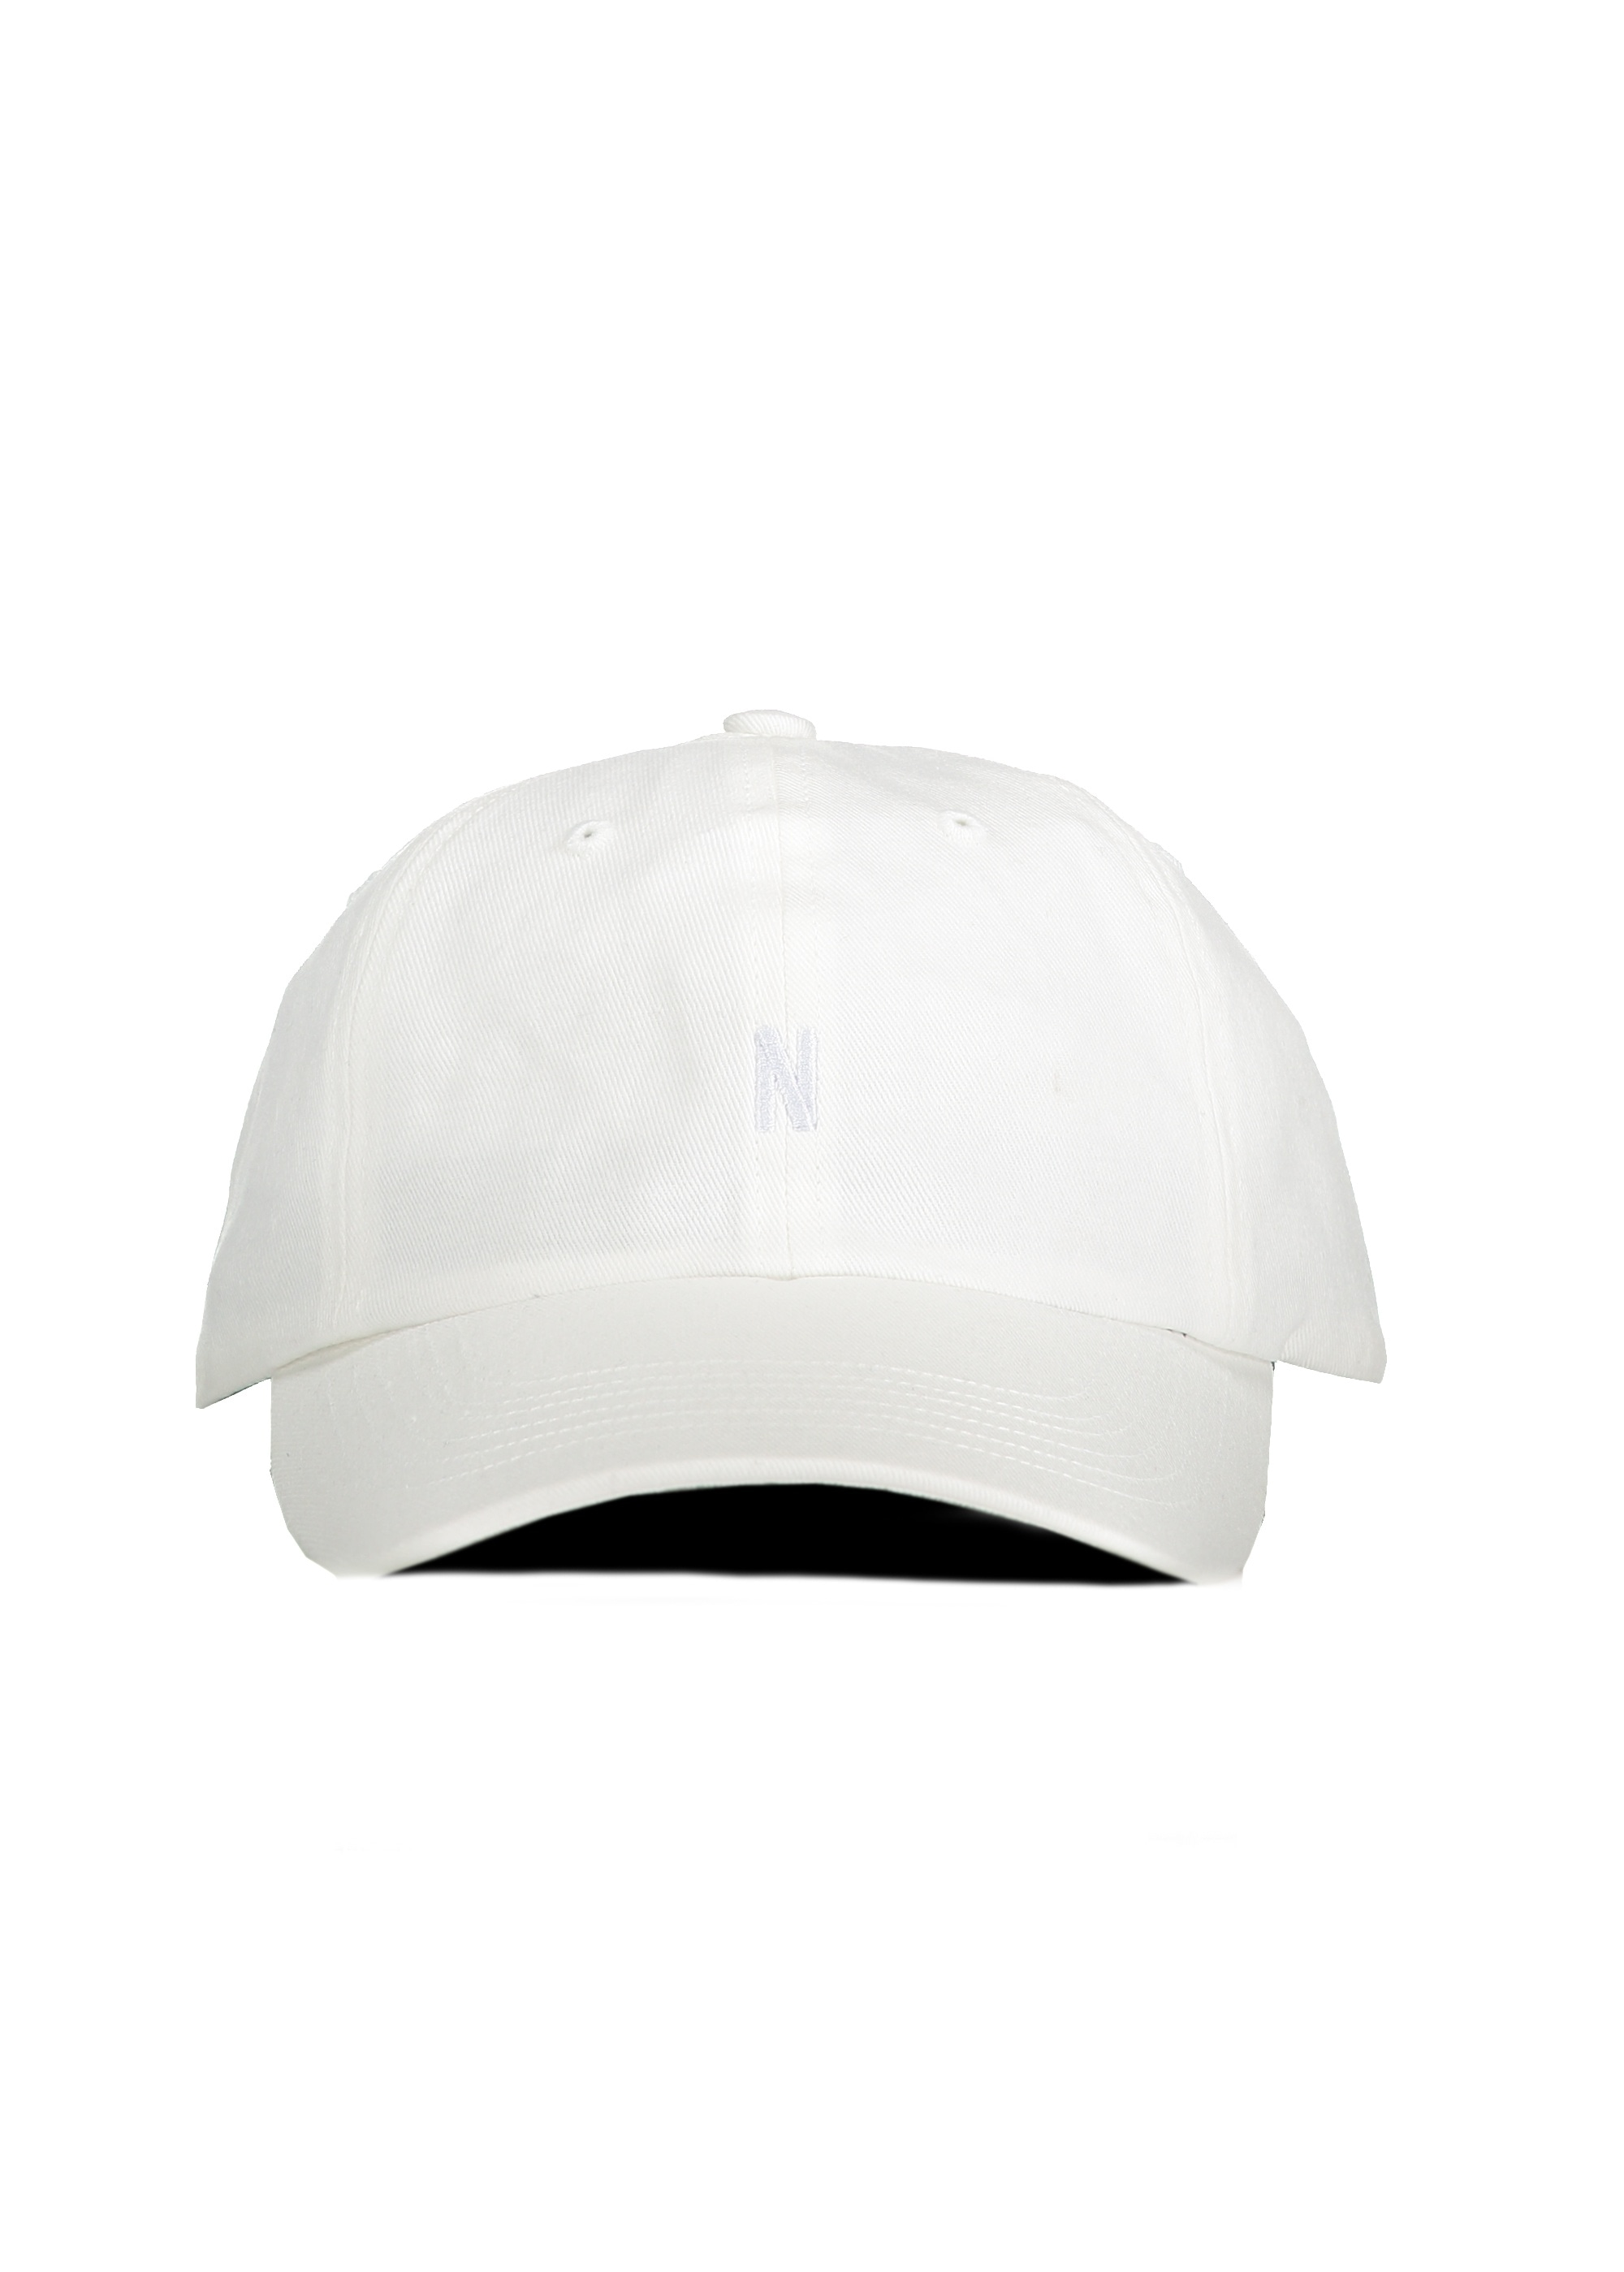 Norse Projects Twill Sports Cap - White - Headwear from Triads UK 300995e725f